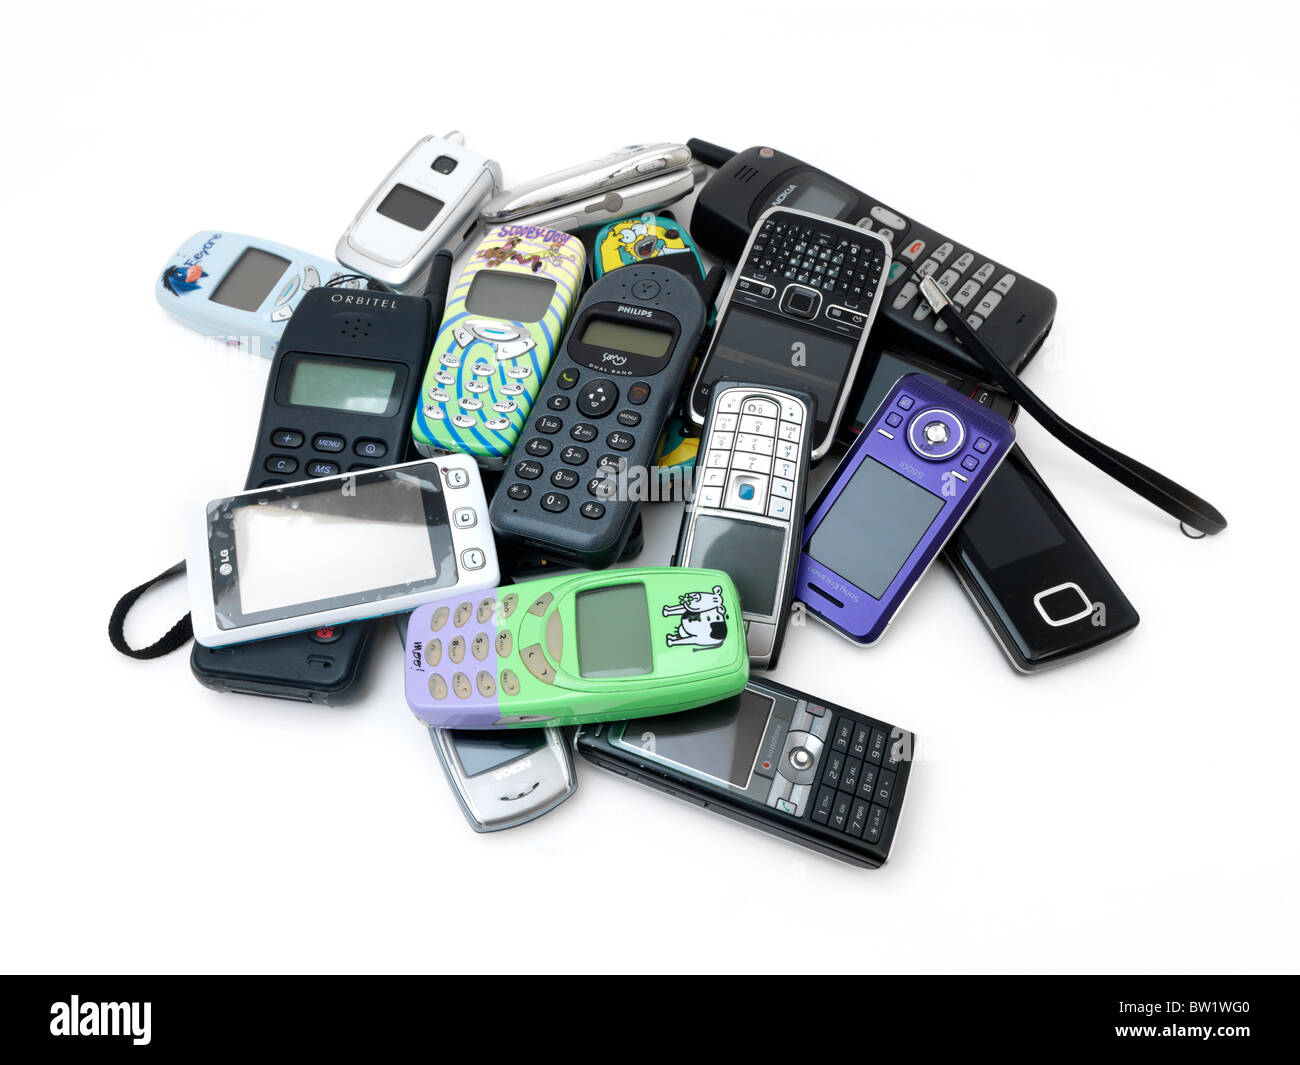 Pile Of Cell Phones : A pile of old and new mobile phones nokia samsung lg